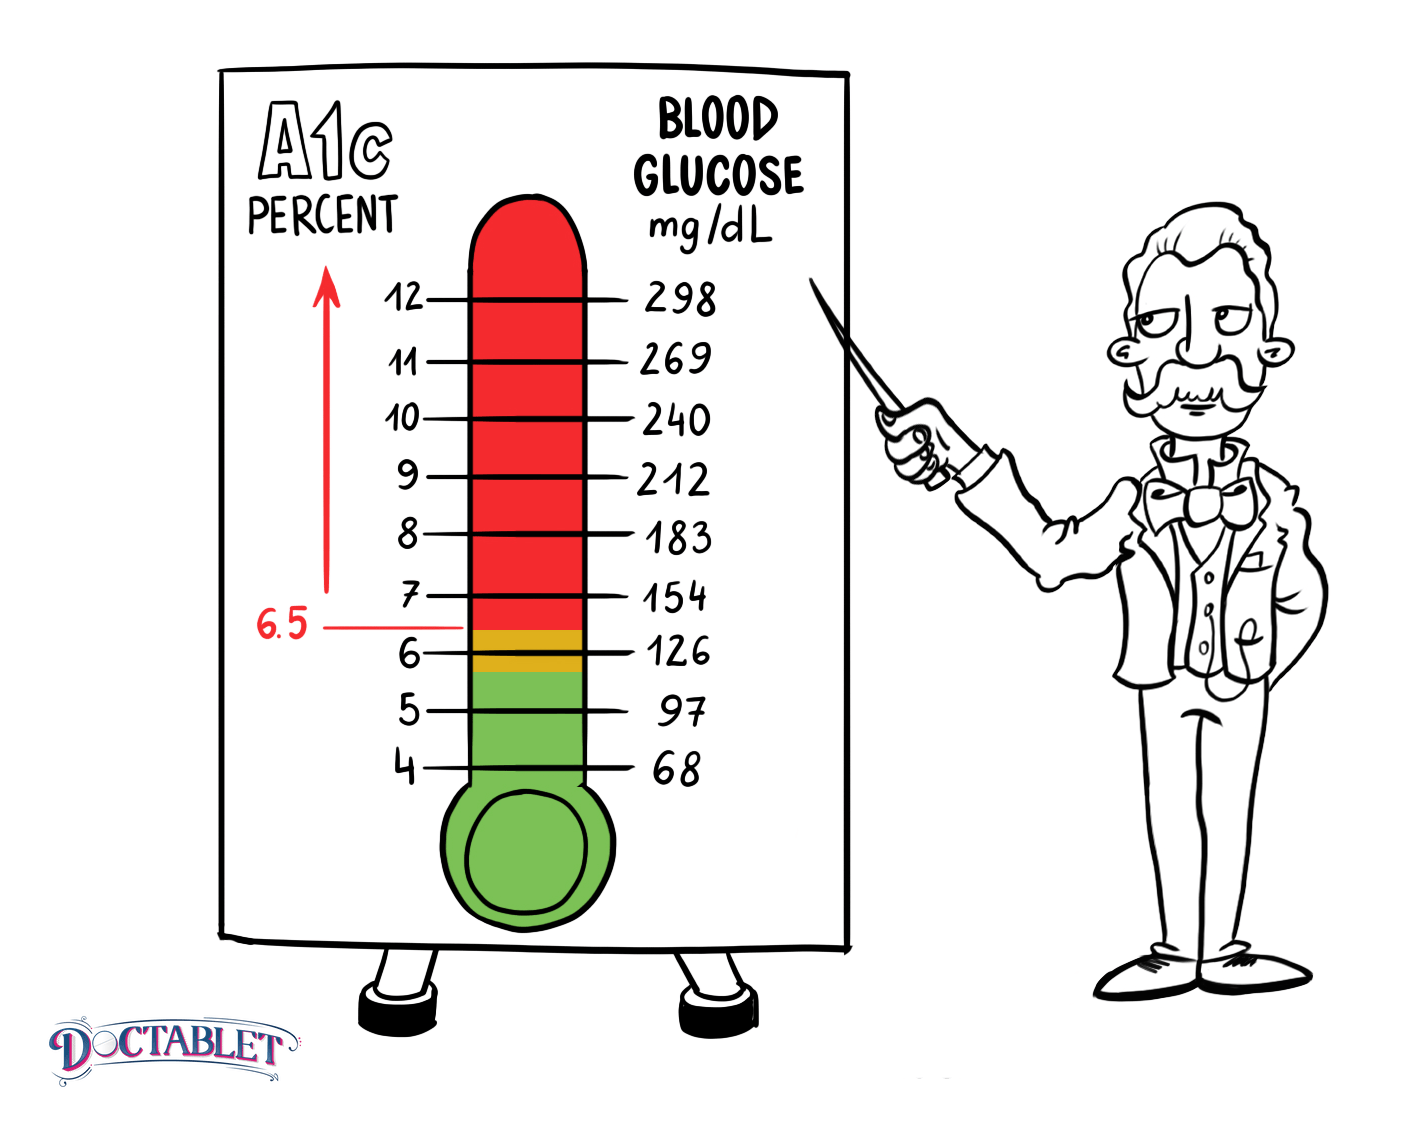 A1c levels for diabetics: Normal A1C is 5.6 and below.